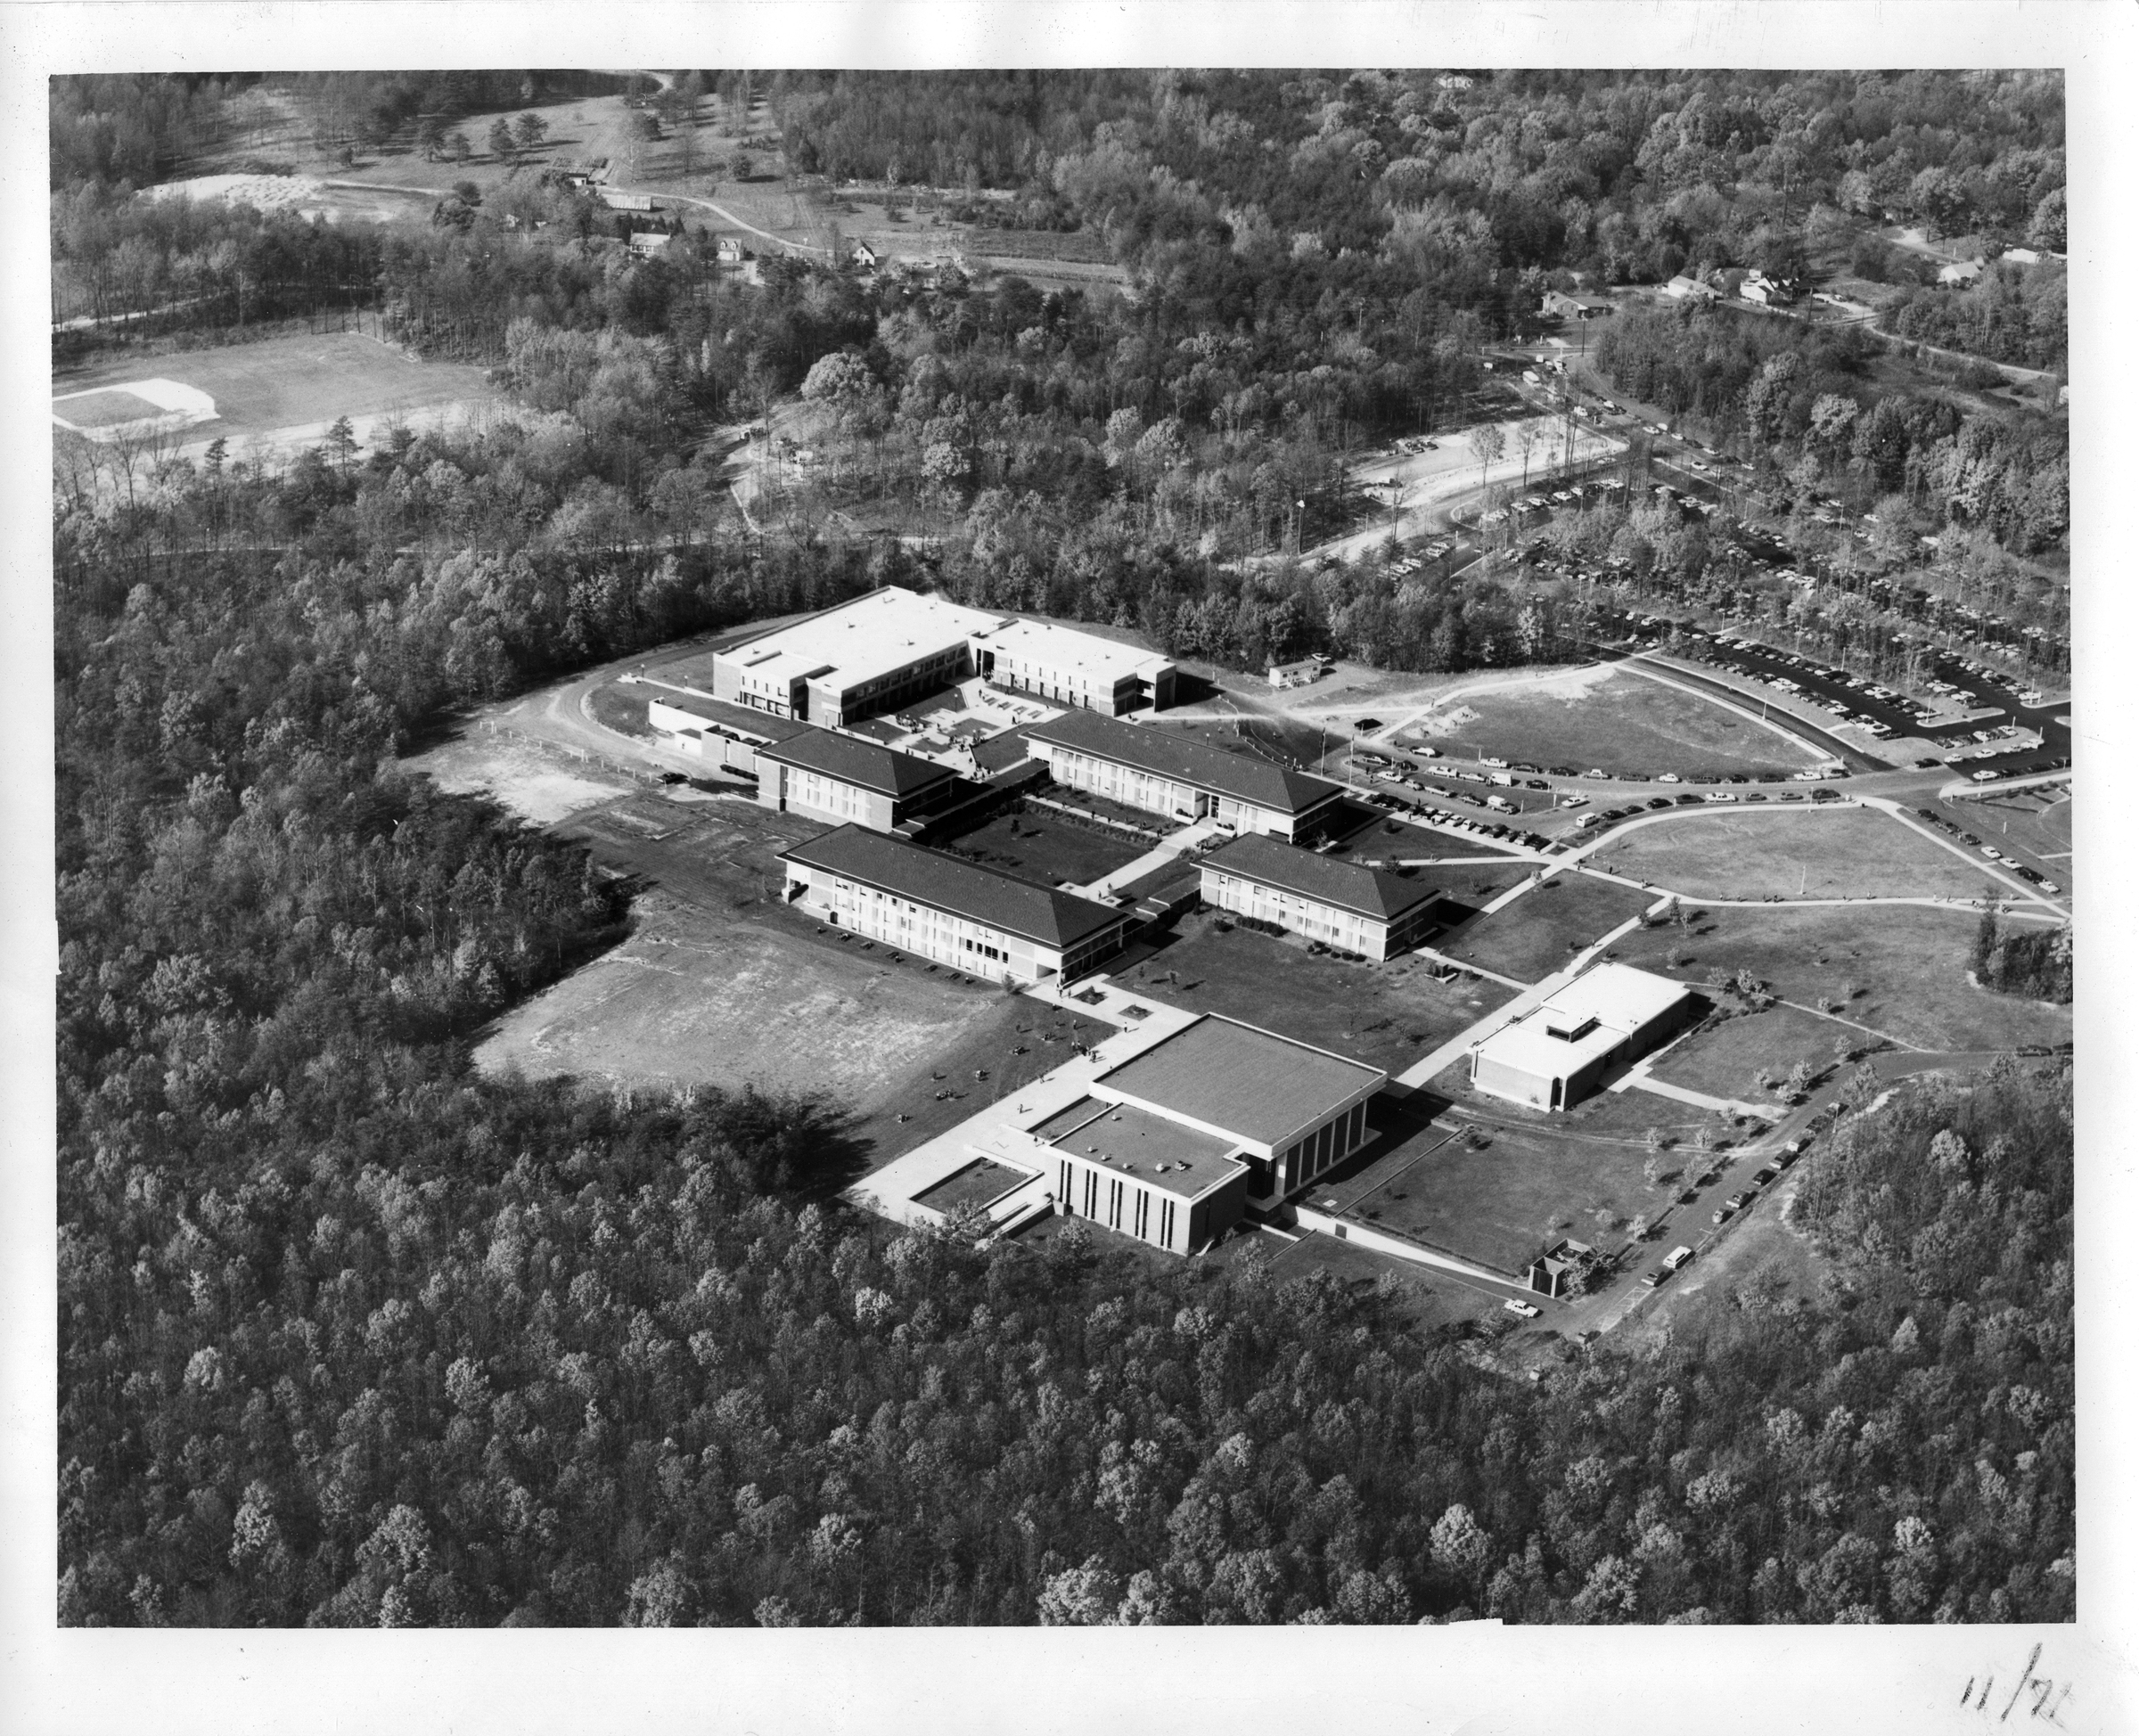 George Mason College, Fairfax campus, 1971, aerial photograph looking northwest